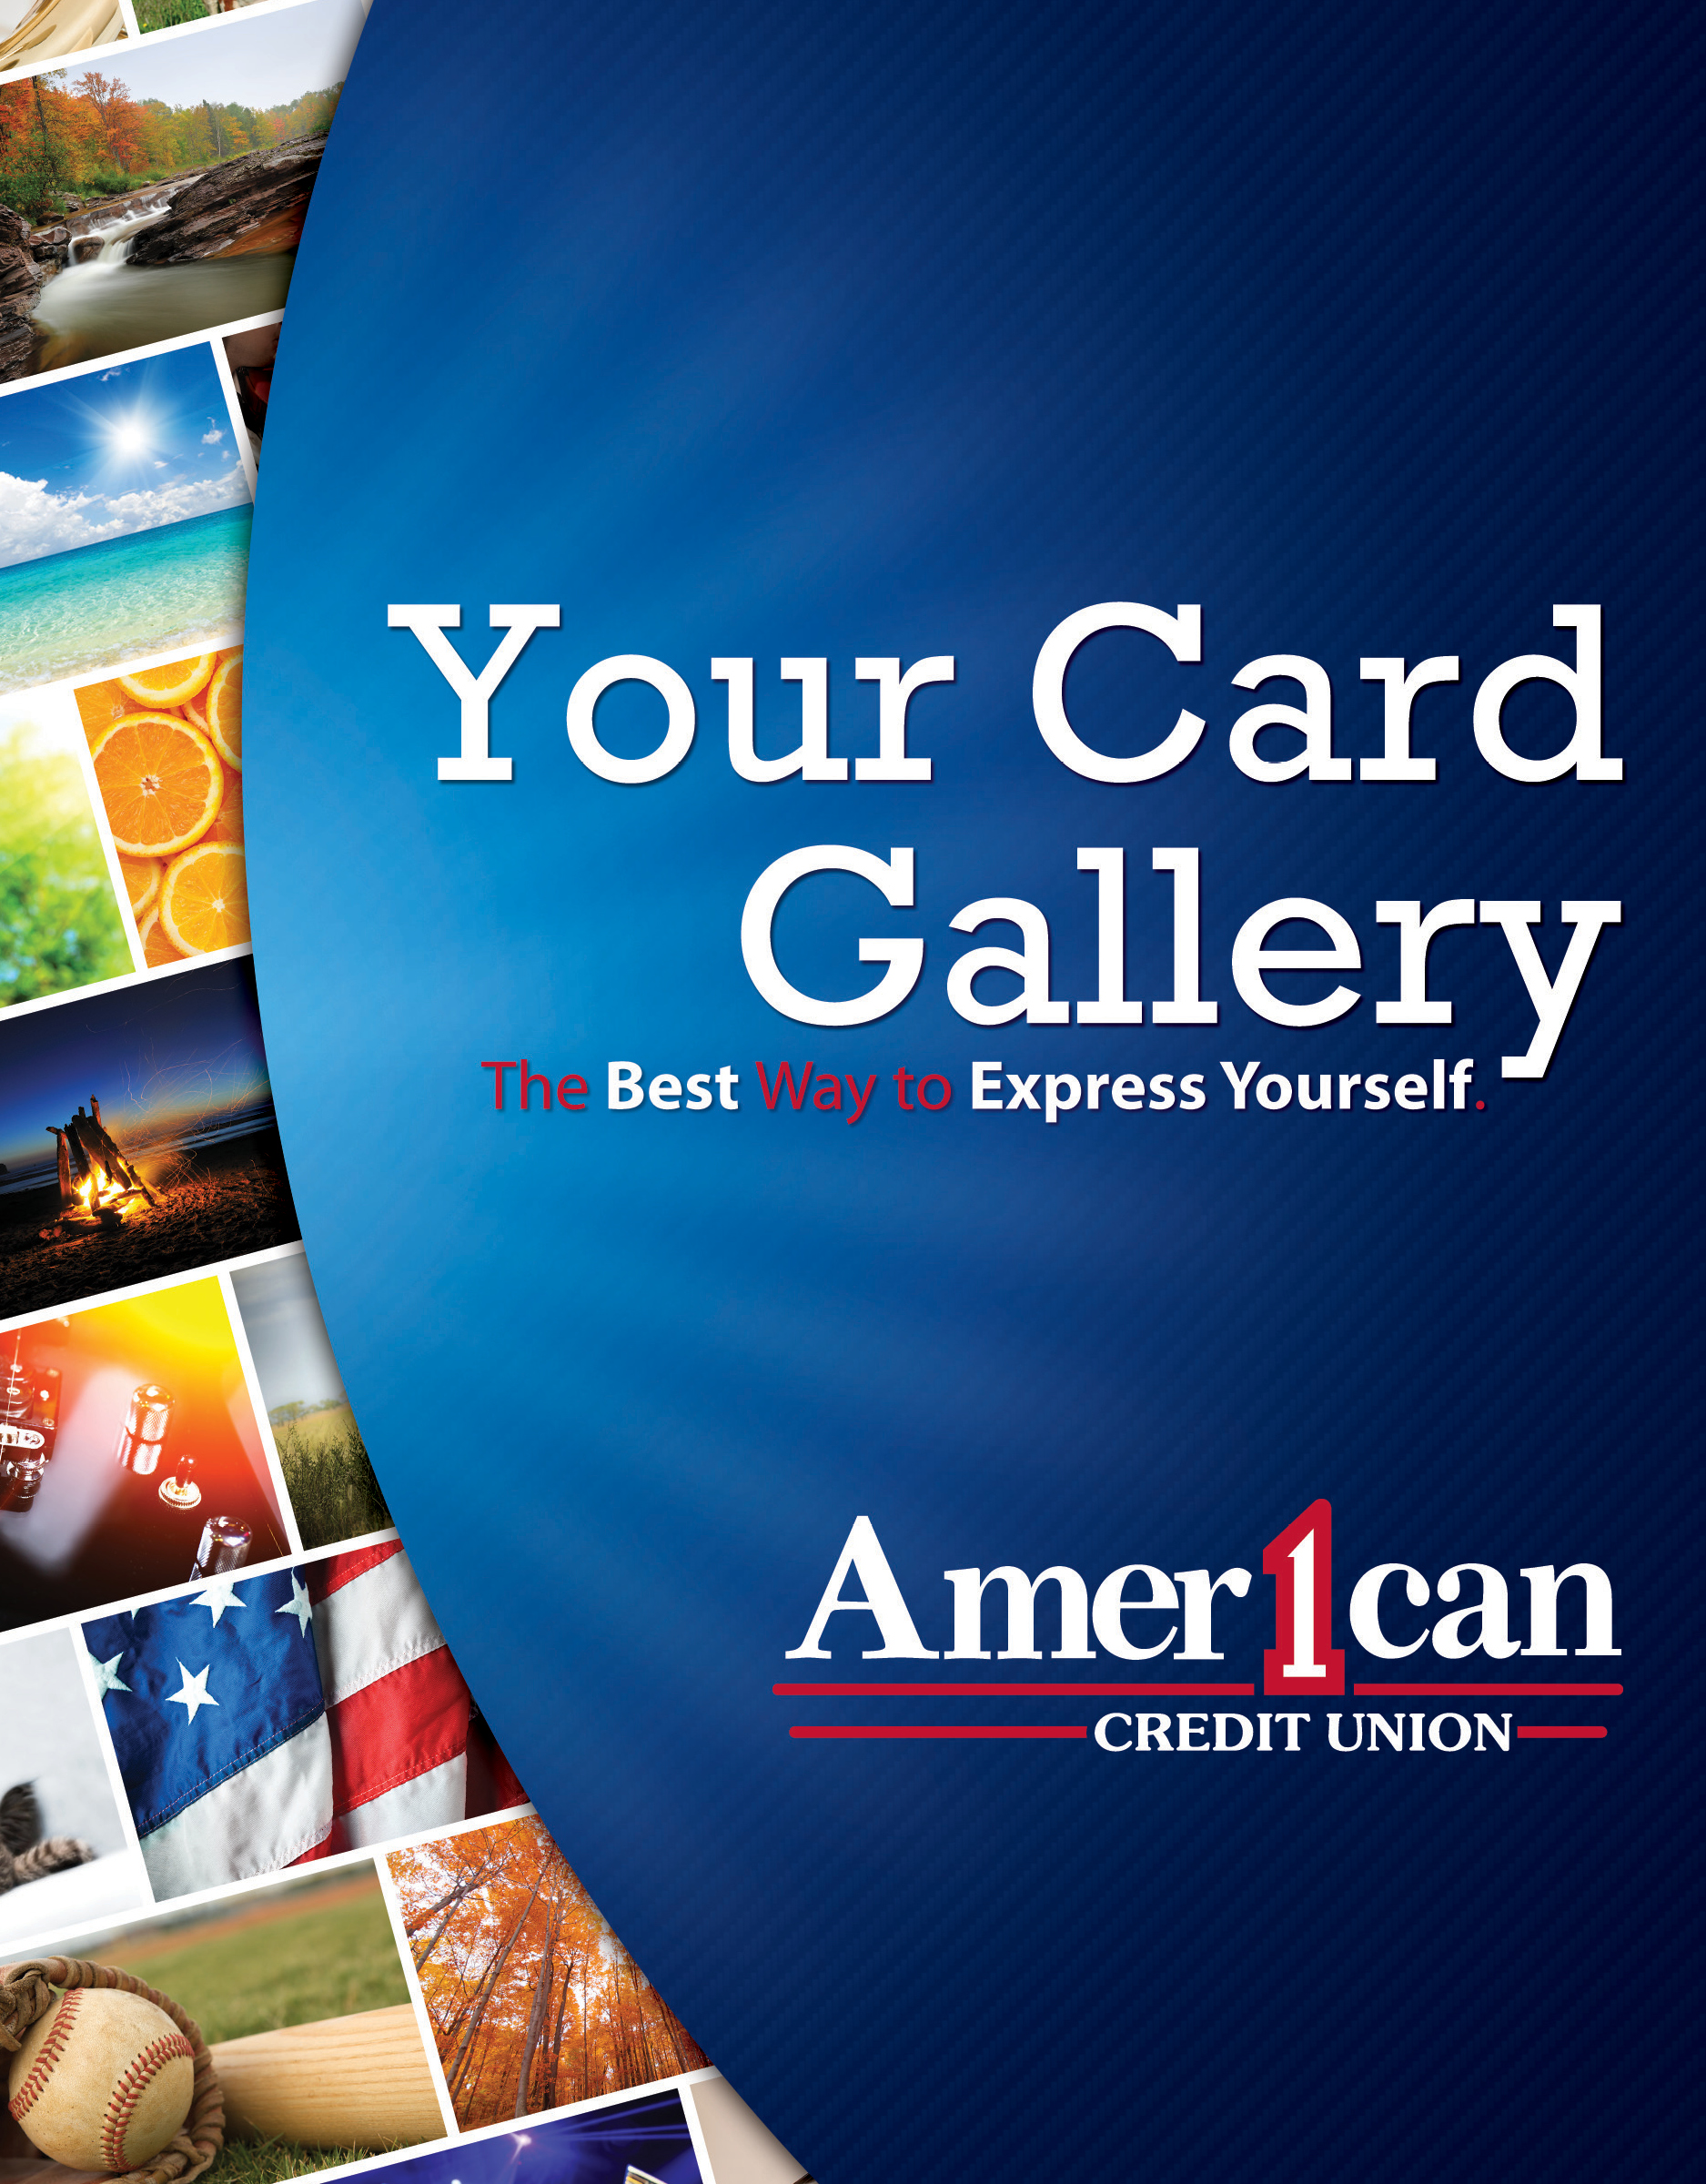 American 1 Credit Union on bank annual reports, bank insurance, bank online banking, bank routing number,